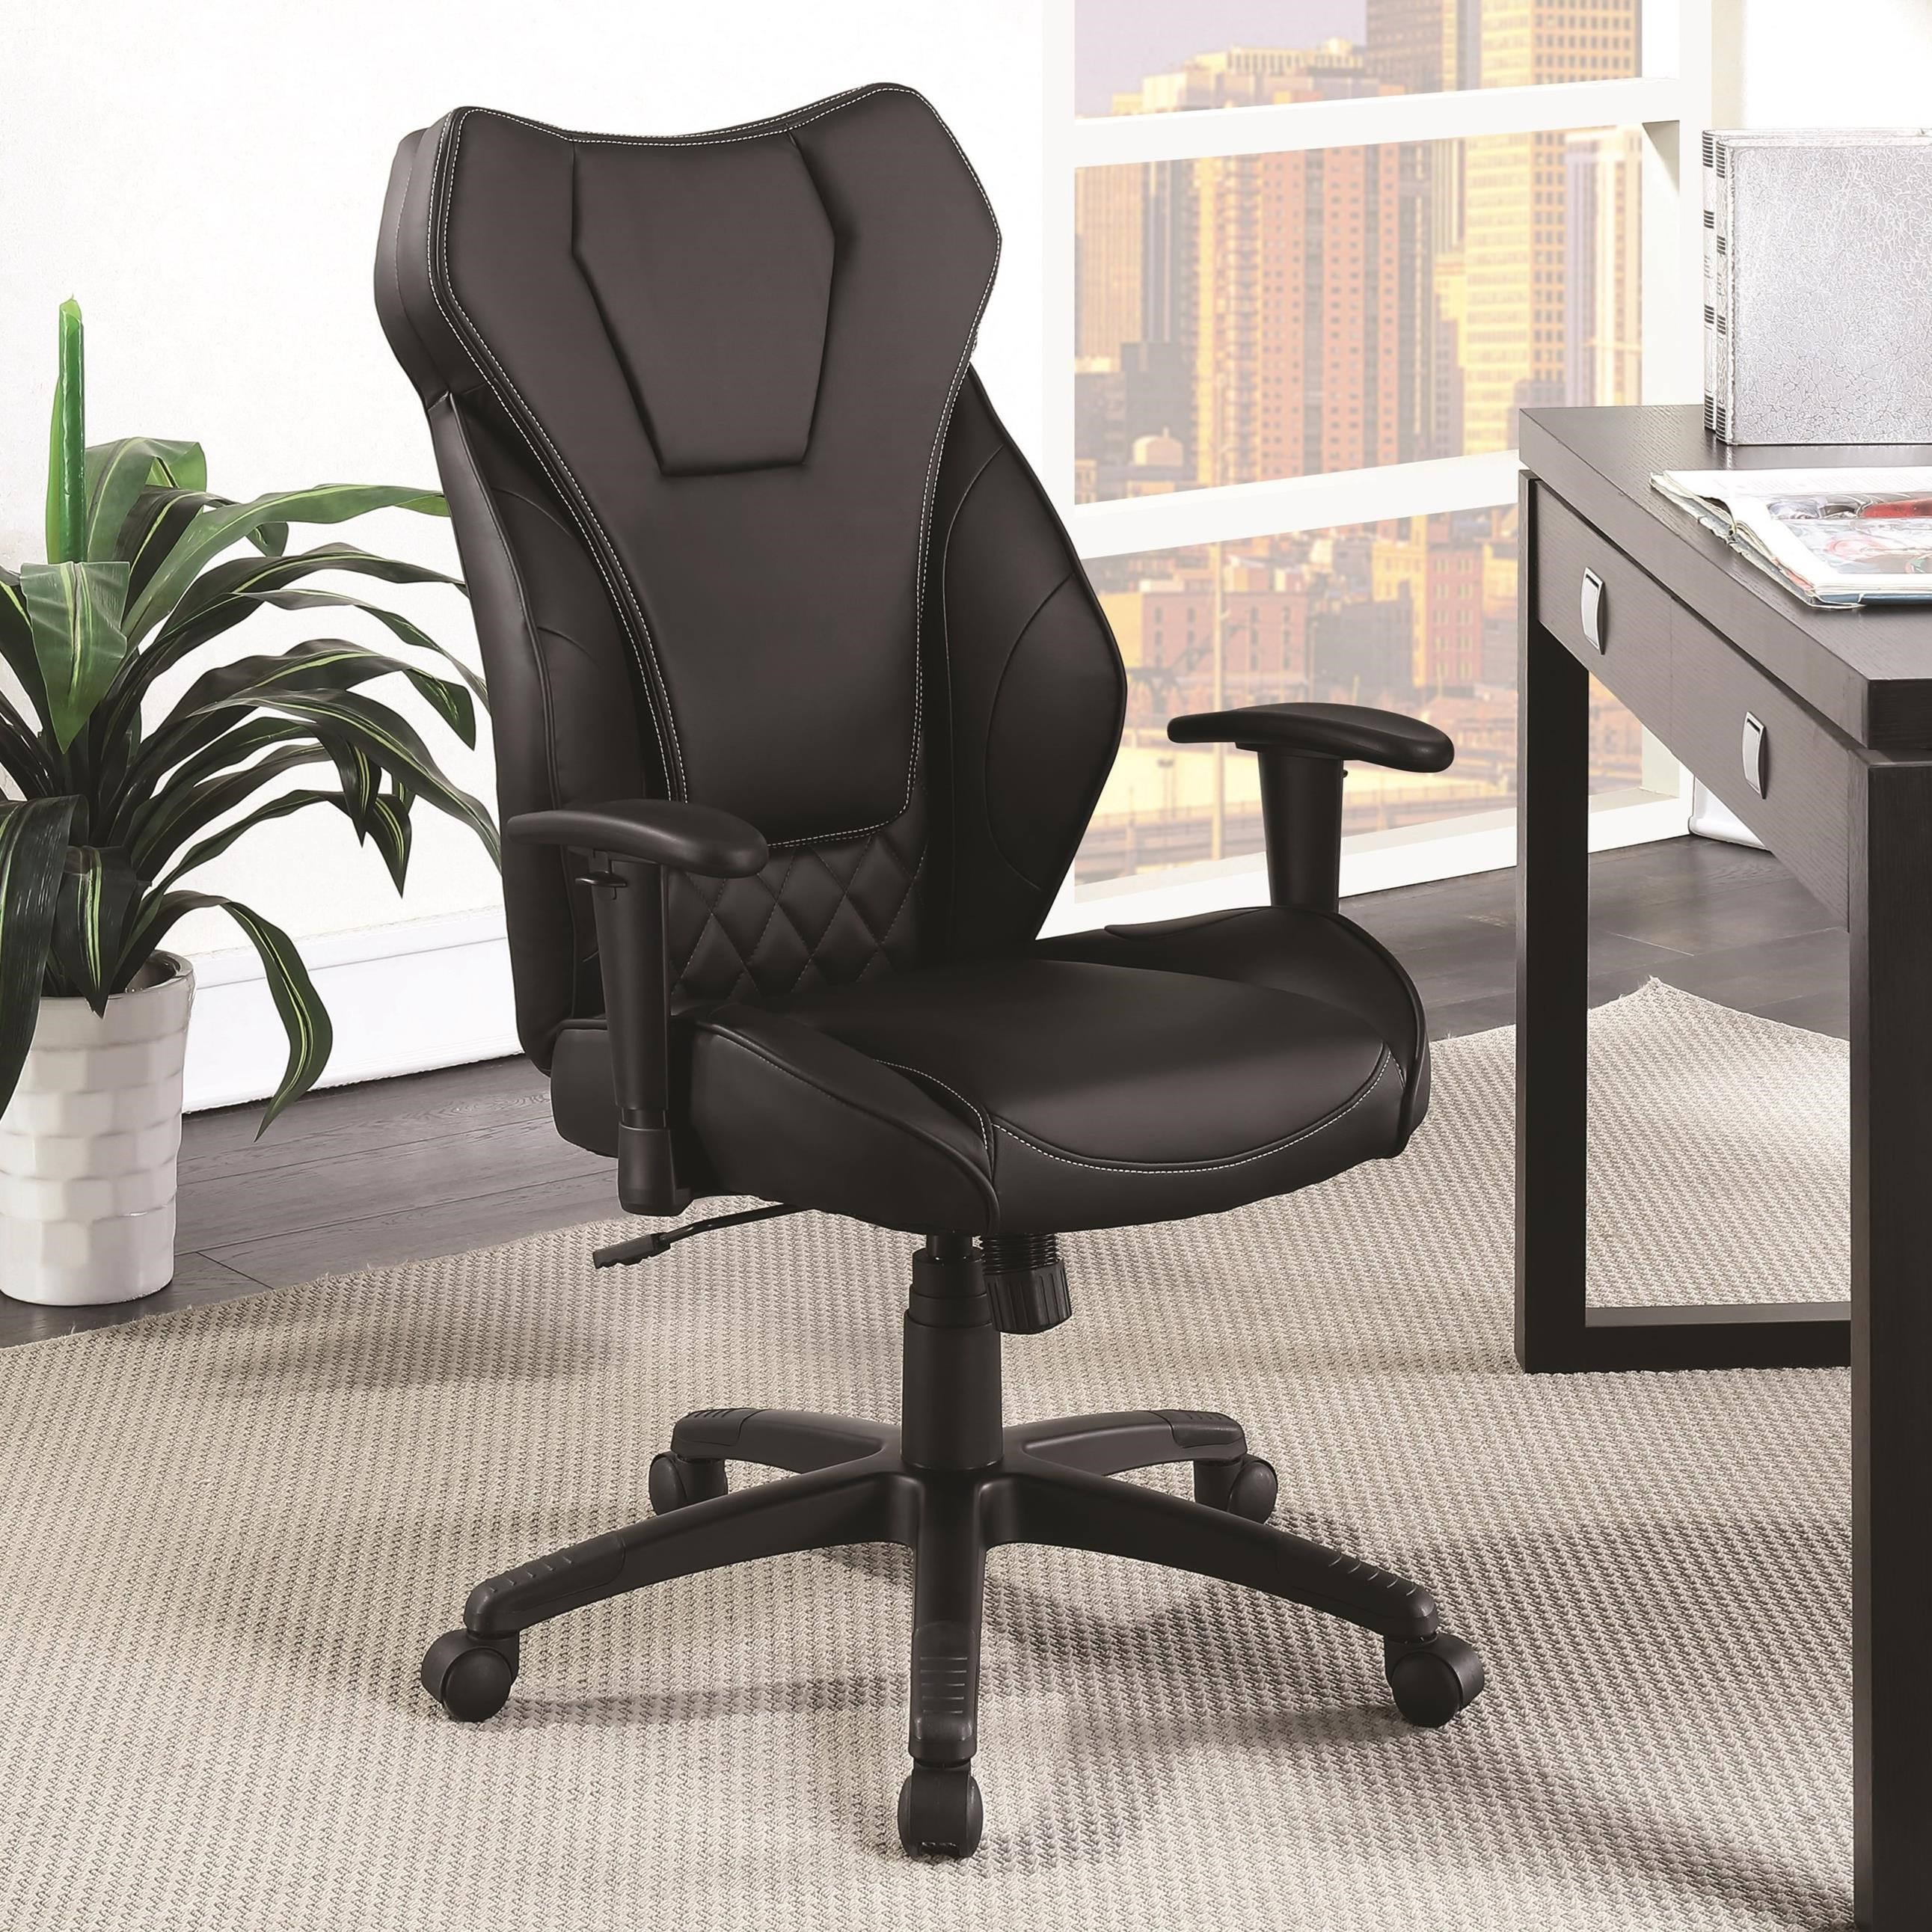 Coaster Office Chairs Office Chair - Item Number: 802470